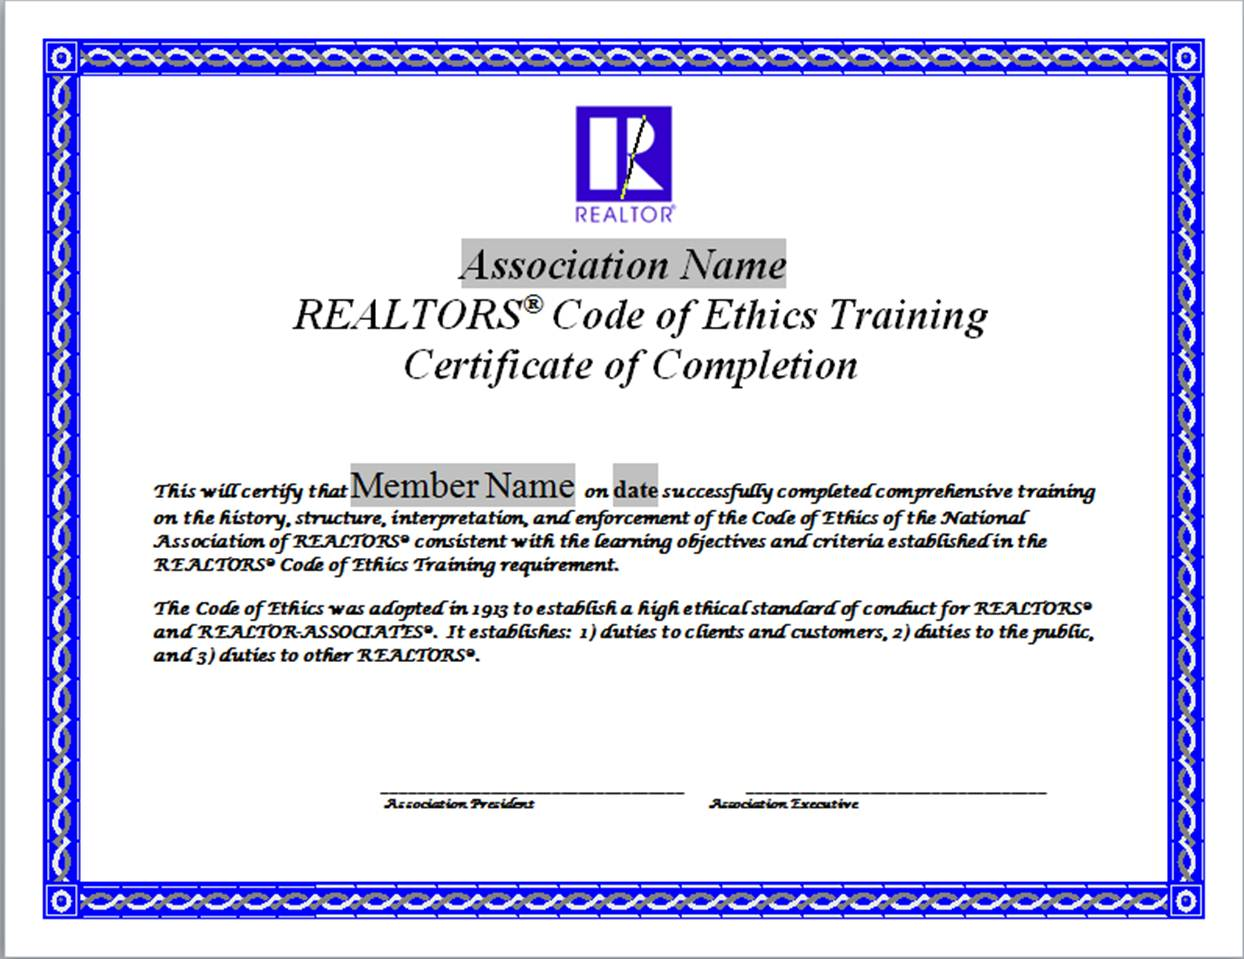 Code of ethics training certificates naraltor certificate 1 alramifo Gallery